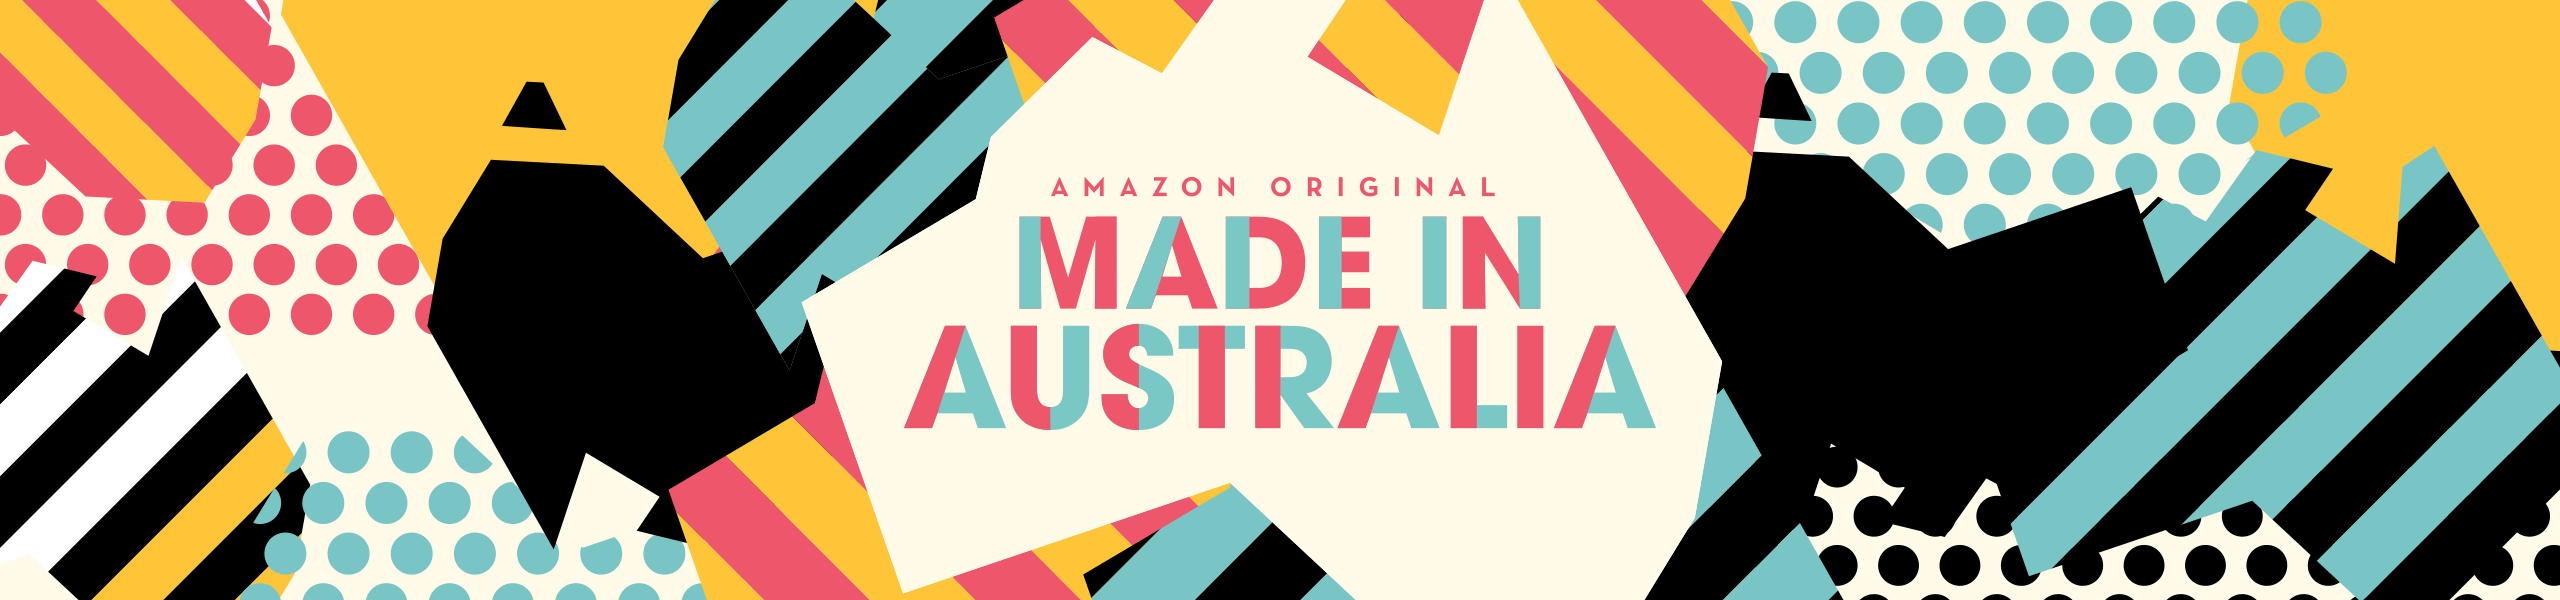 Amazon Original Made in Australia